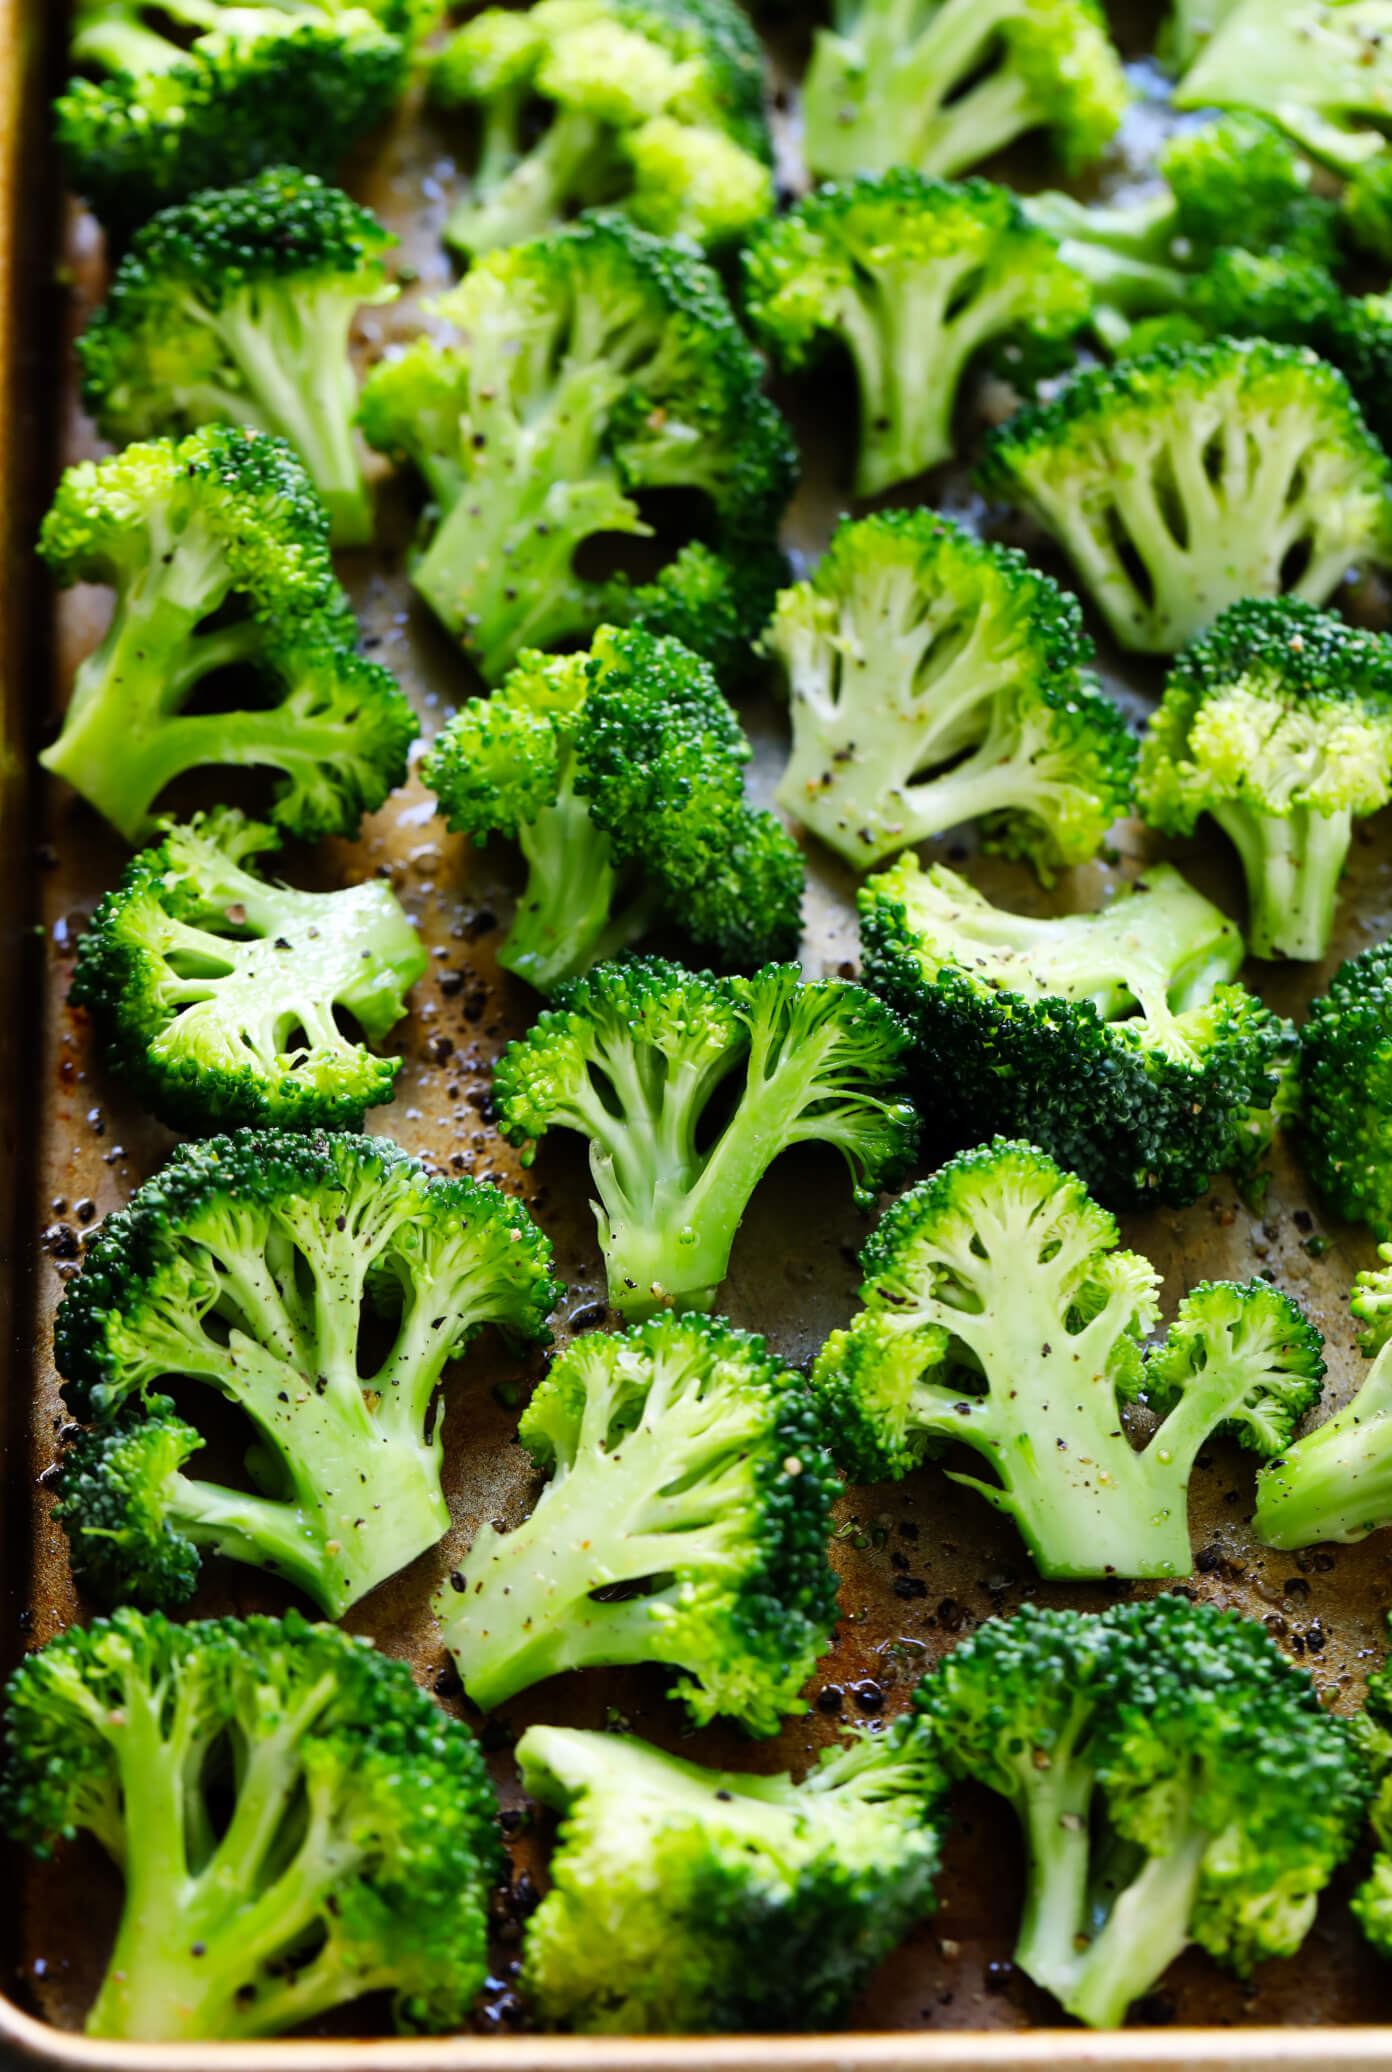 Raw Broccoli Florets